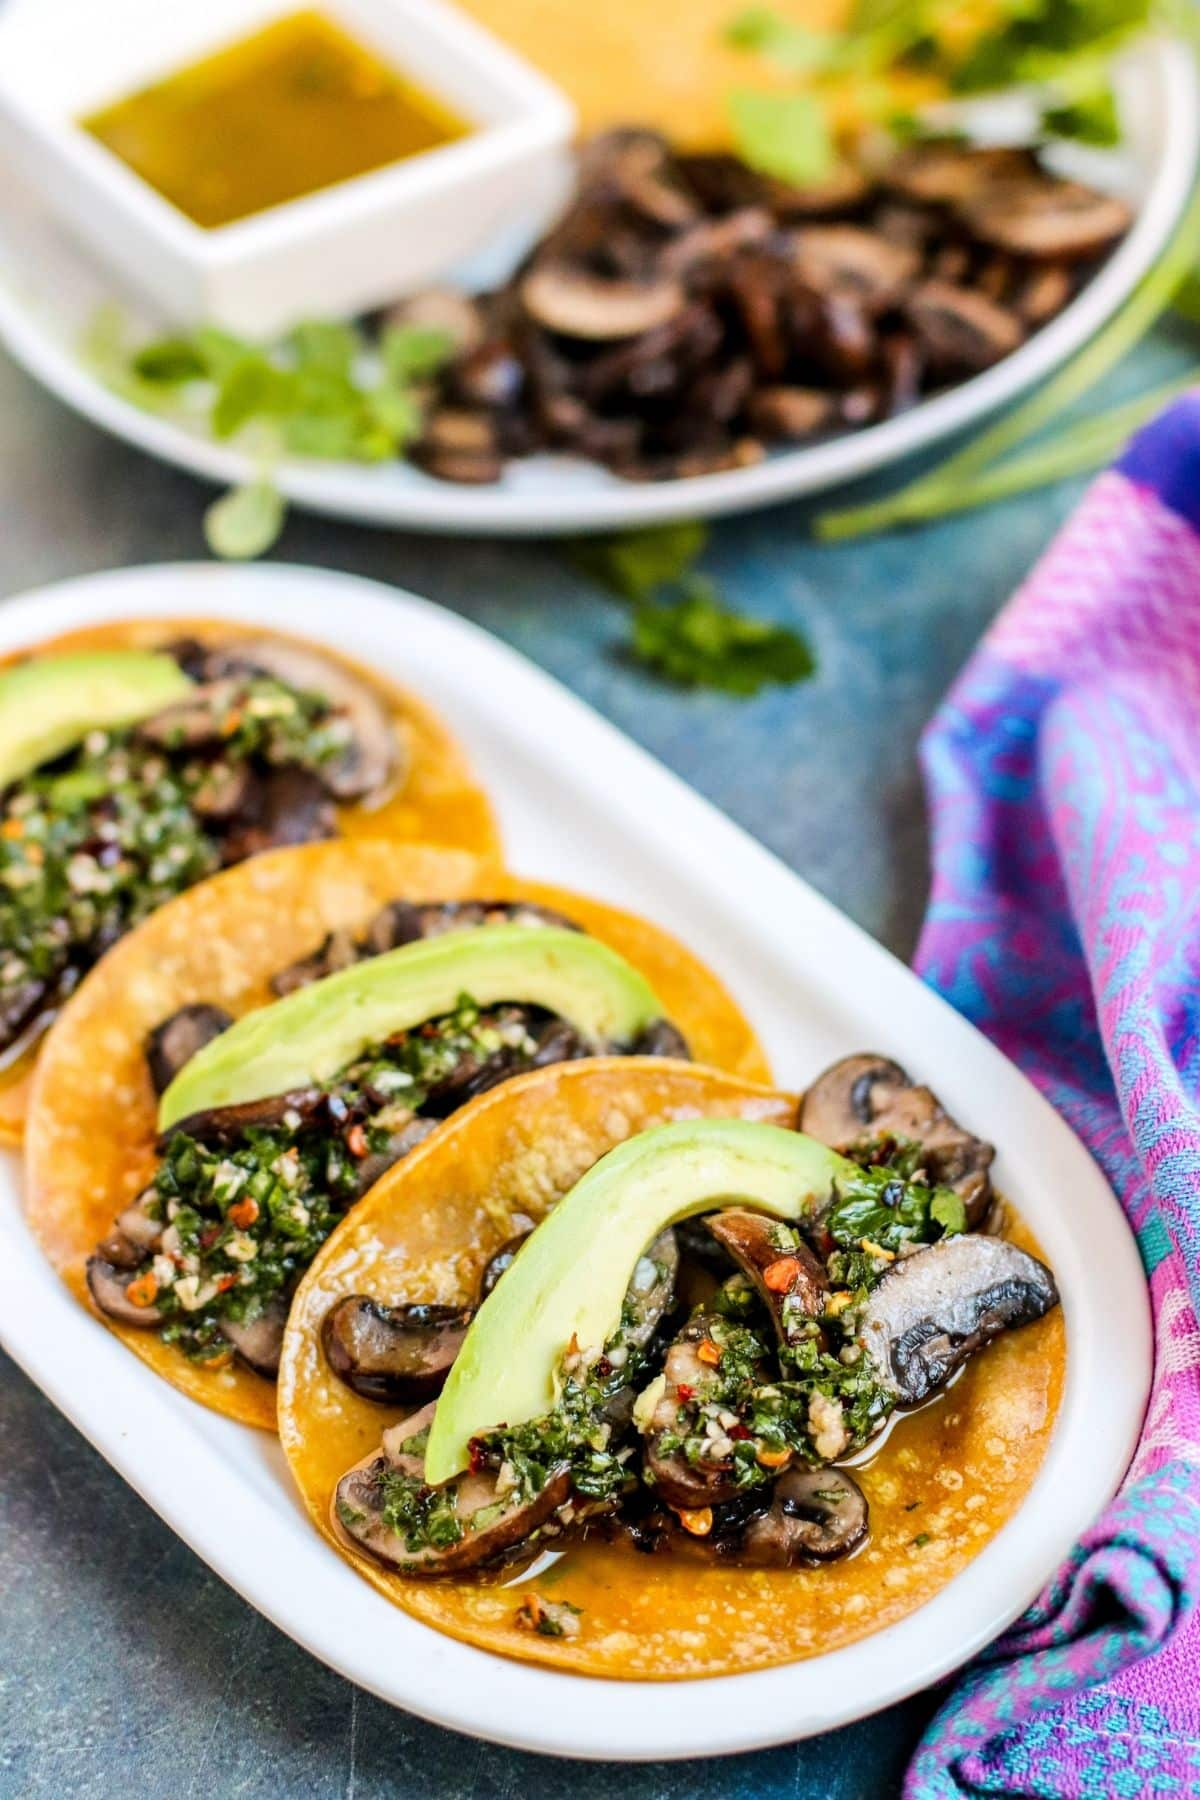 Plater of mushroom tacos topped with avocado slices and Chimichurri sauce